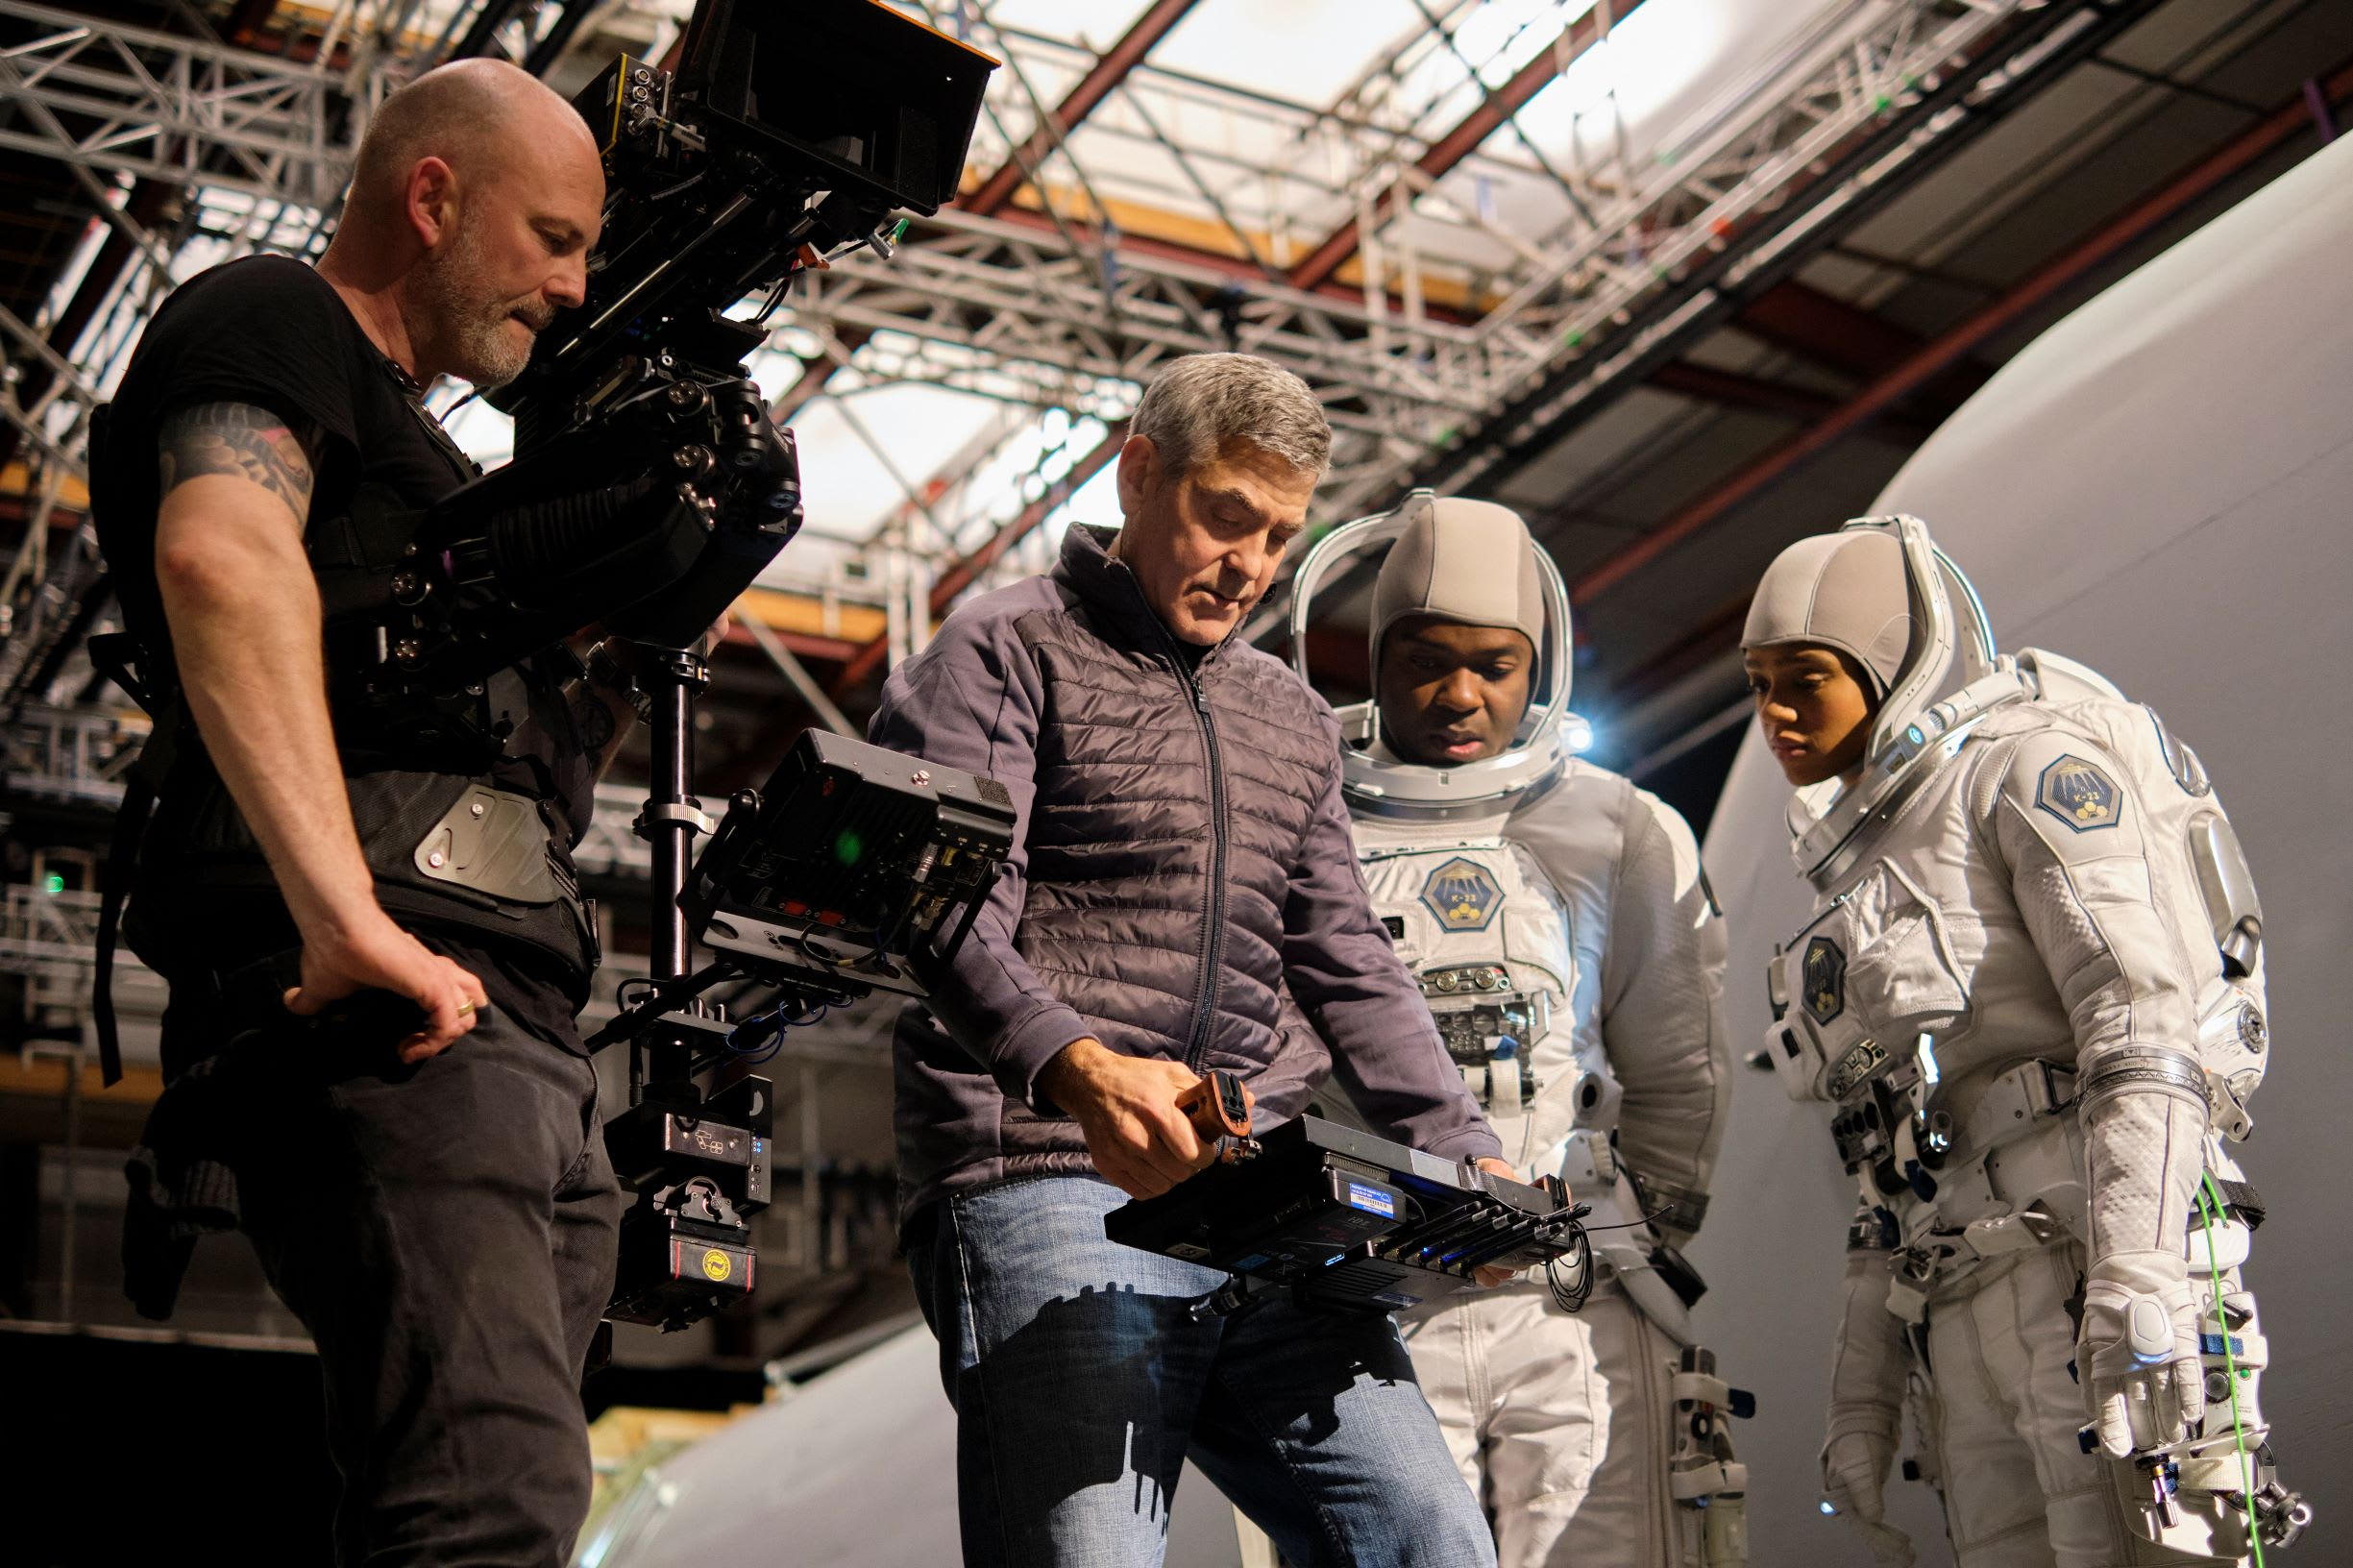 George Clooney pictured looking at an electronic device while standing next to two people dressed in astronaut costumes and another dressed all in black